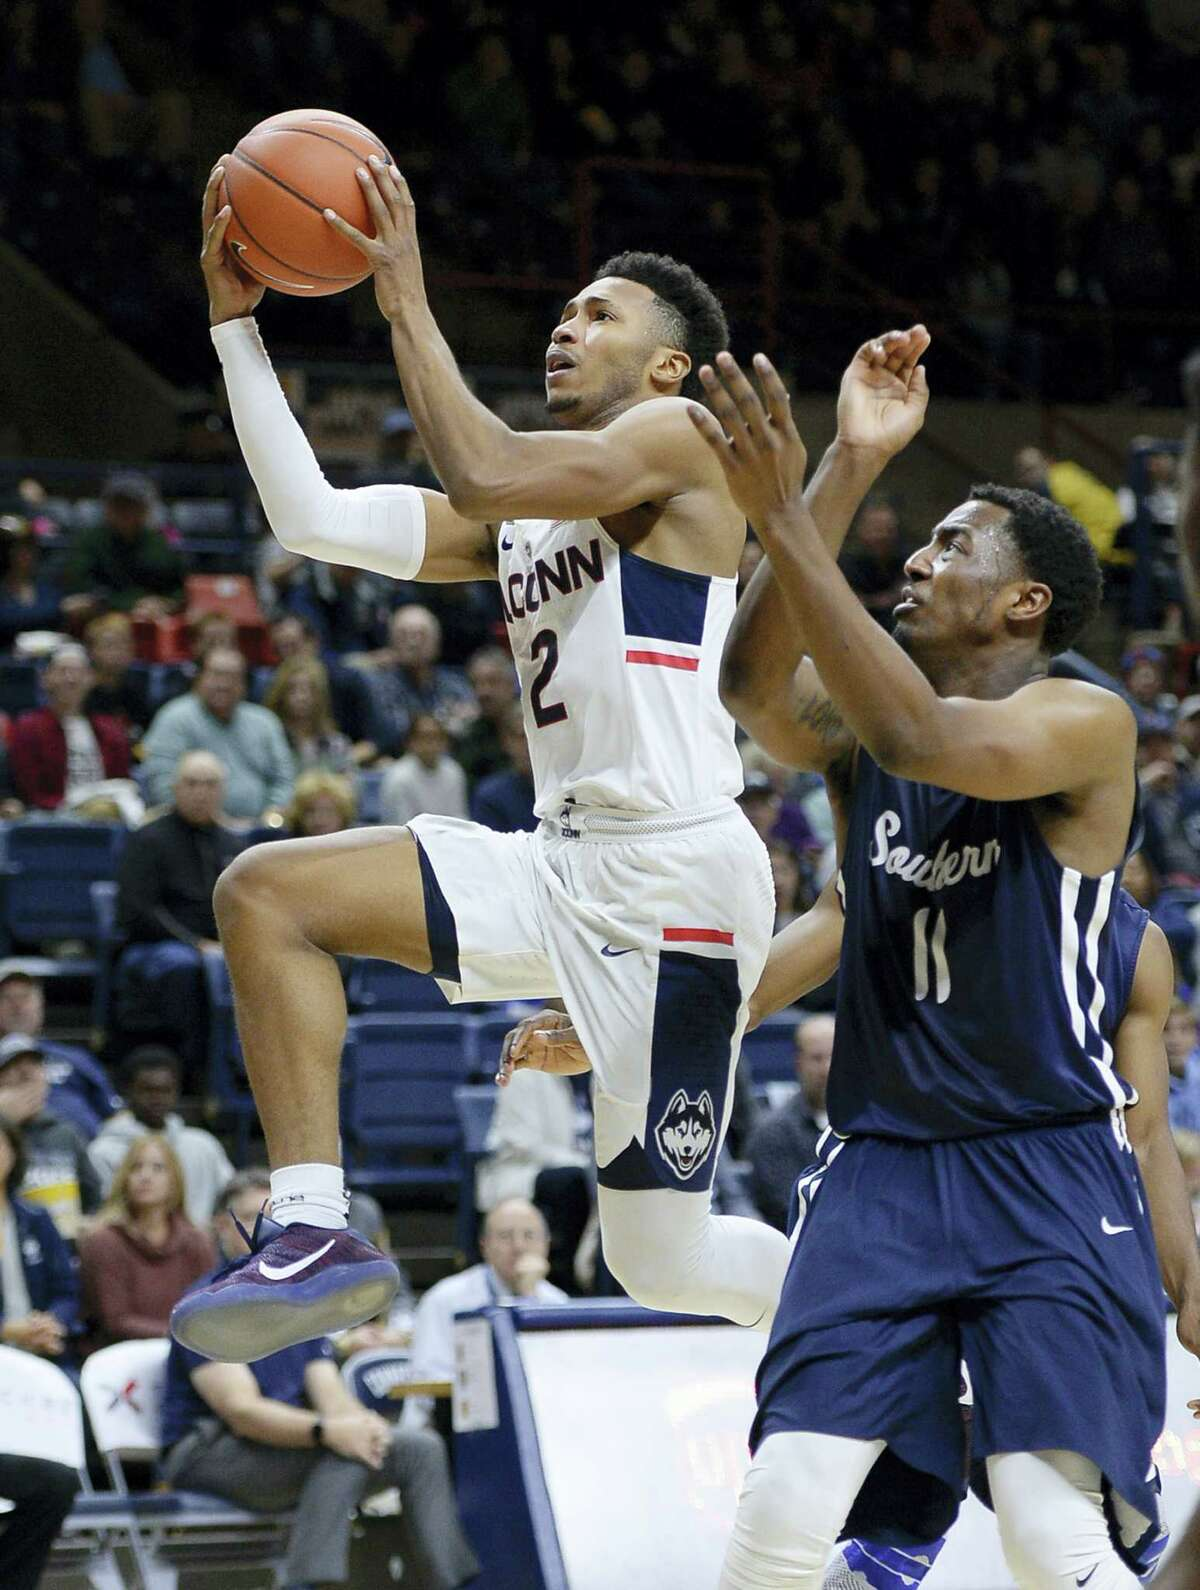 UConn's Jalen Adams drives to the basket during an exhibition against SCSU.